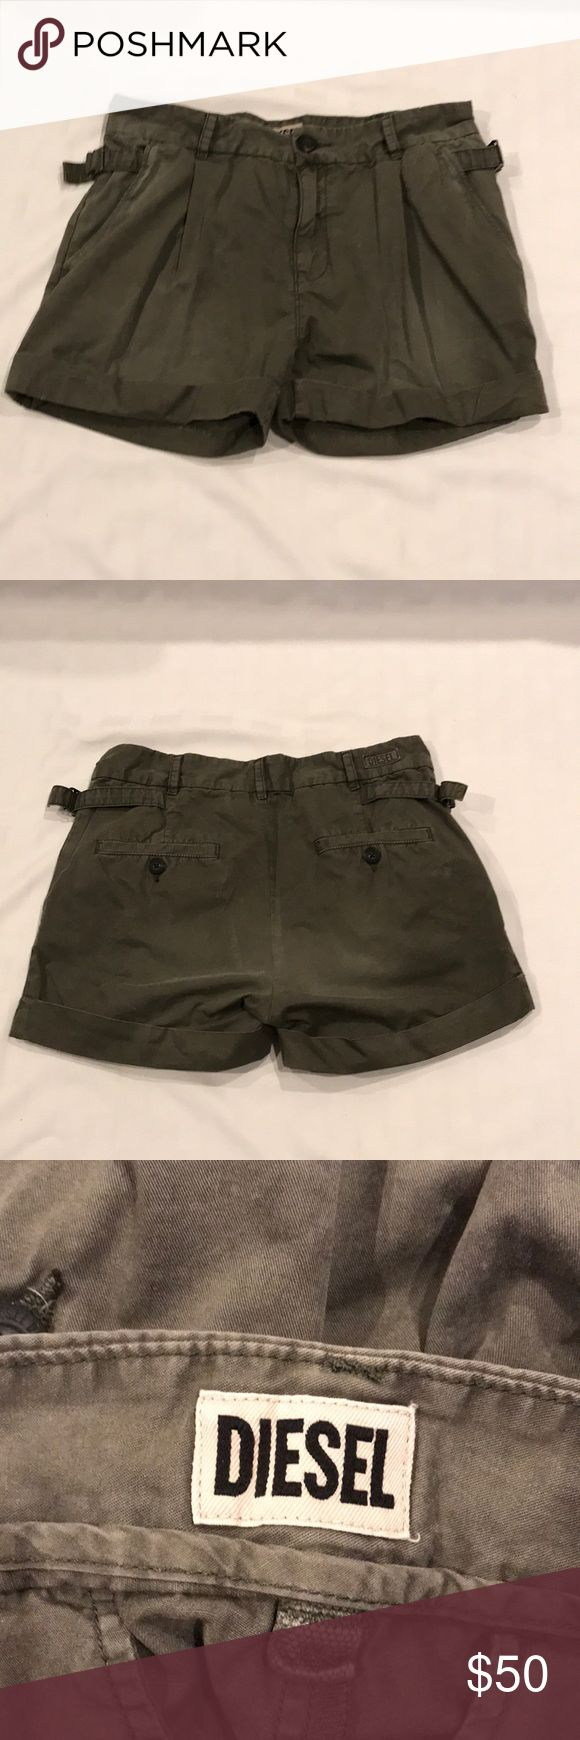 Diesel shorts BNWOT Diesel cargo shorts. Get a jump start on your summer wardrobe with these stylish shorts. Free gift with purchase Diesel Shorts Cargos